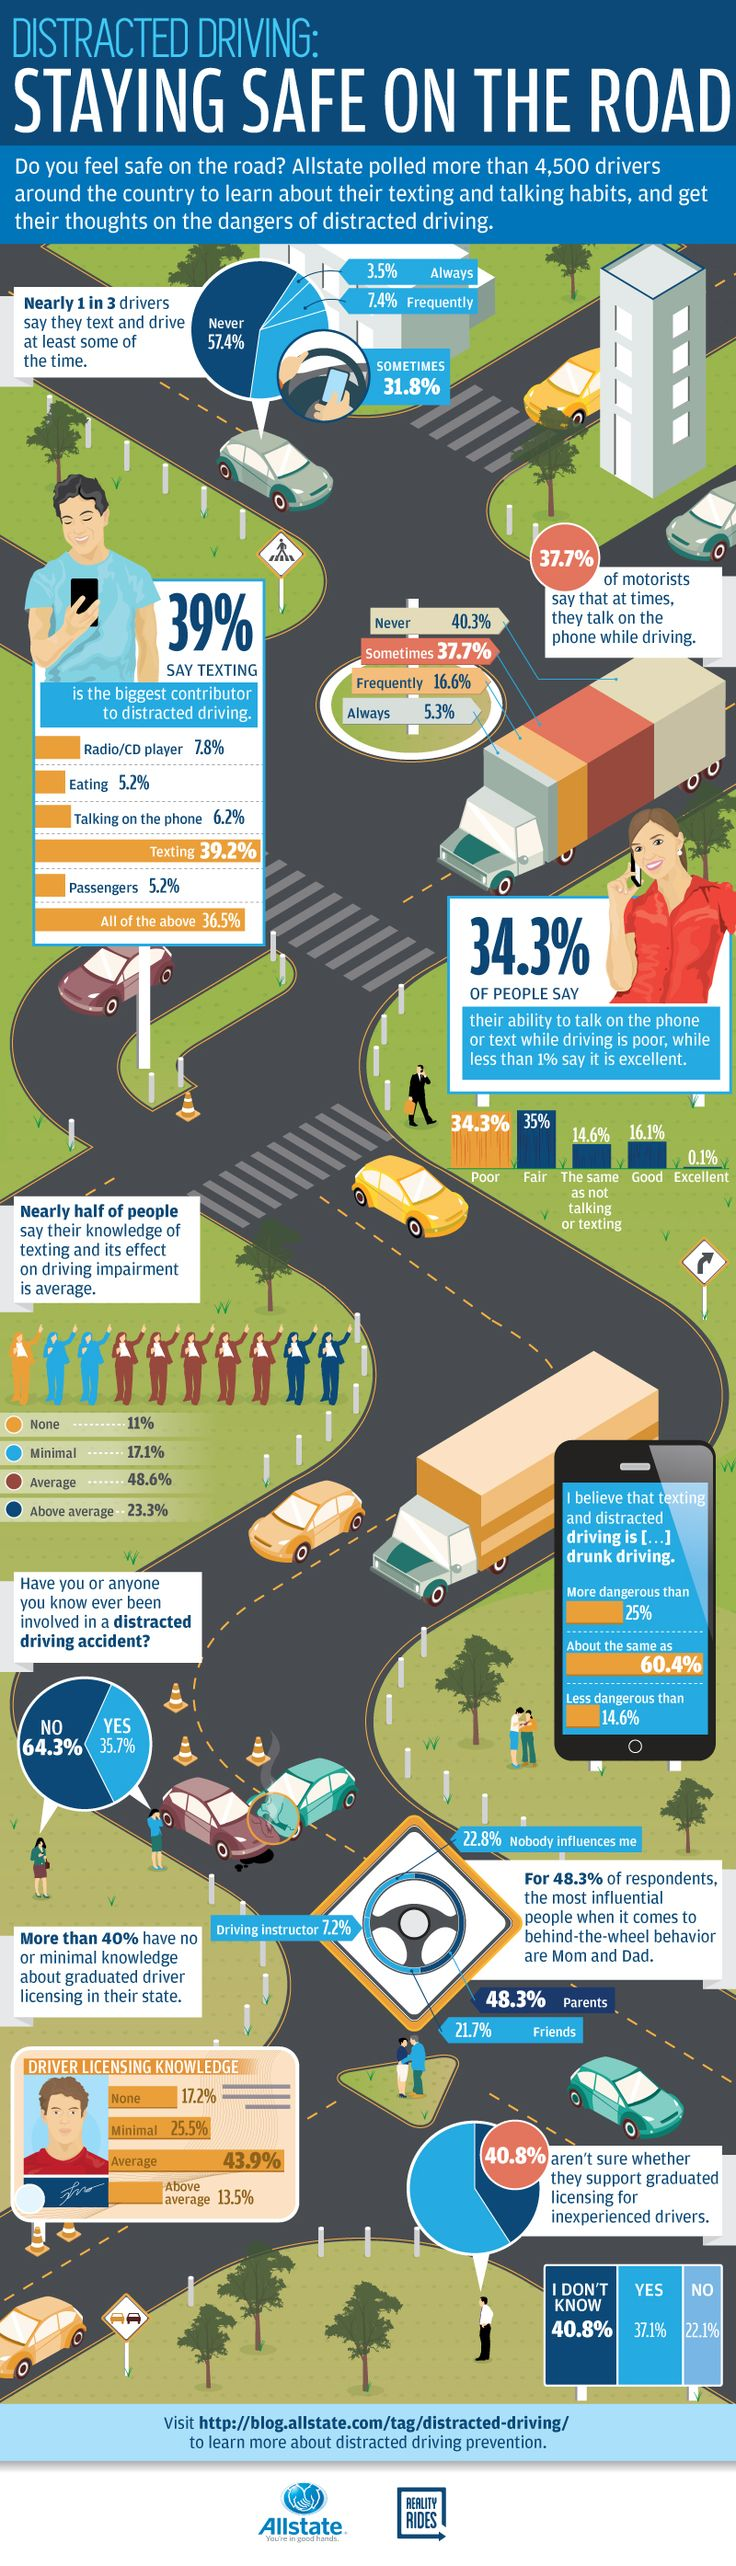 In 2013, 424,000 people were hurt in distracted driving-related accidents. Check out our infographic for insights into the habits of drivers nationwide.